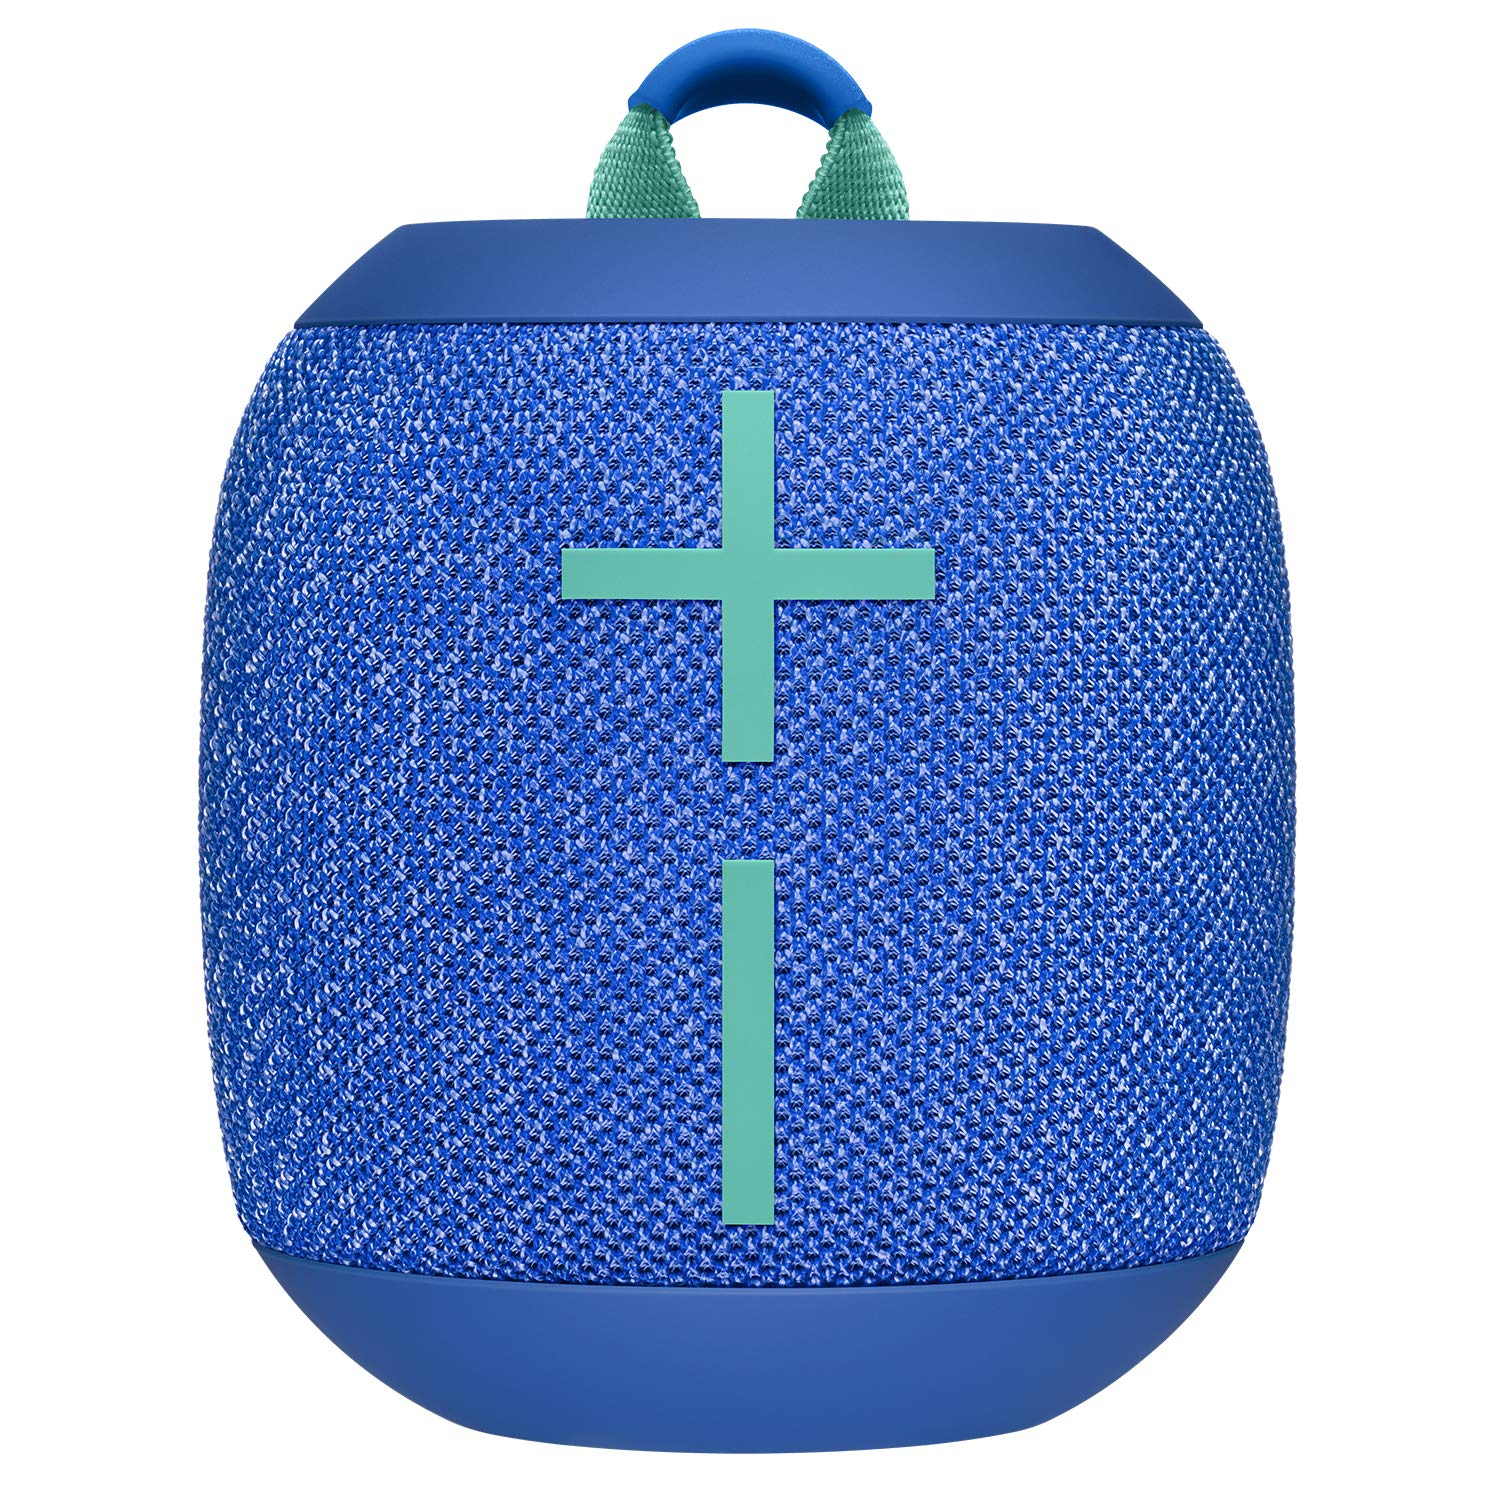 Parlante inalambrico ULTIMATE EARS WONDERBOOM 2, azul